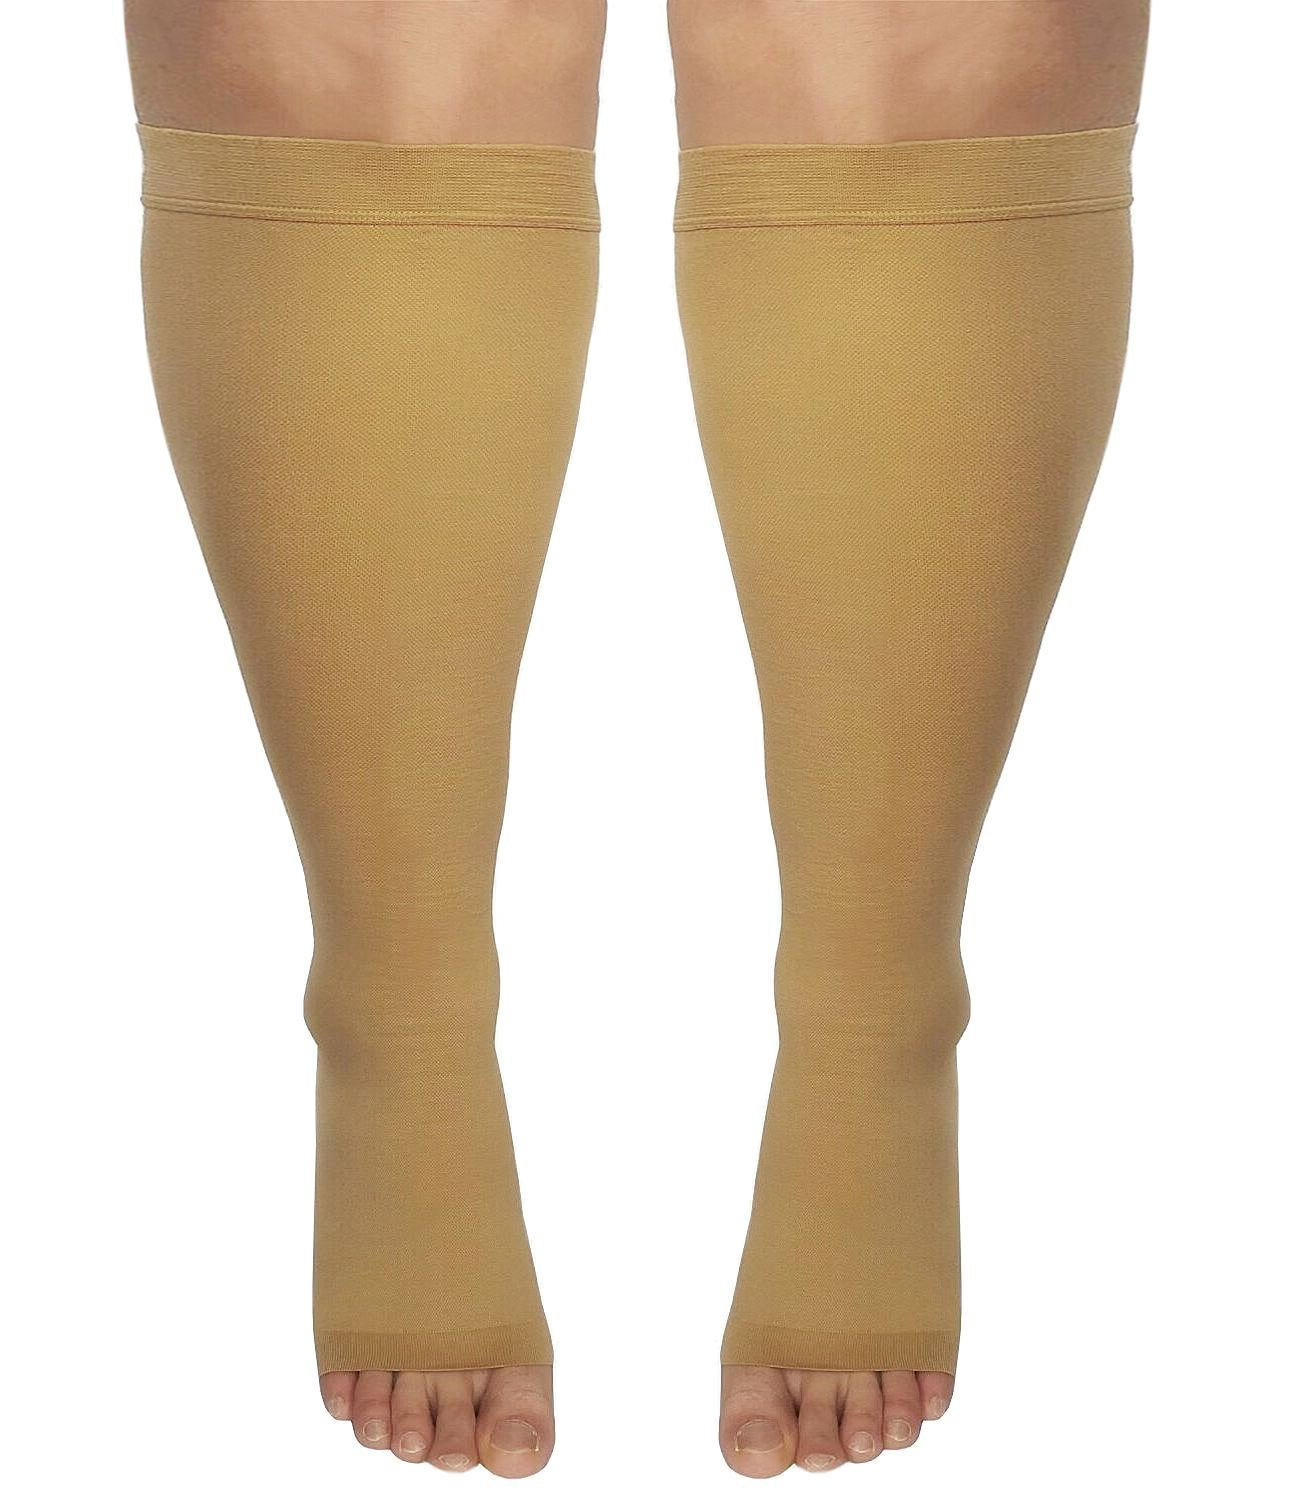 Runee Extra Wide Open Toe Medical Graded Knee High Compression Sock, Extra Large Full Calf Size For Maternity, Travel, Athletes, Sports, Diabetic and Medical Purpose (Beige)